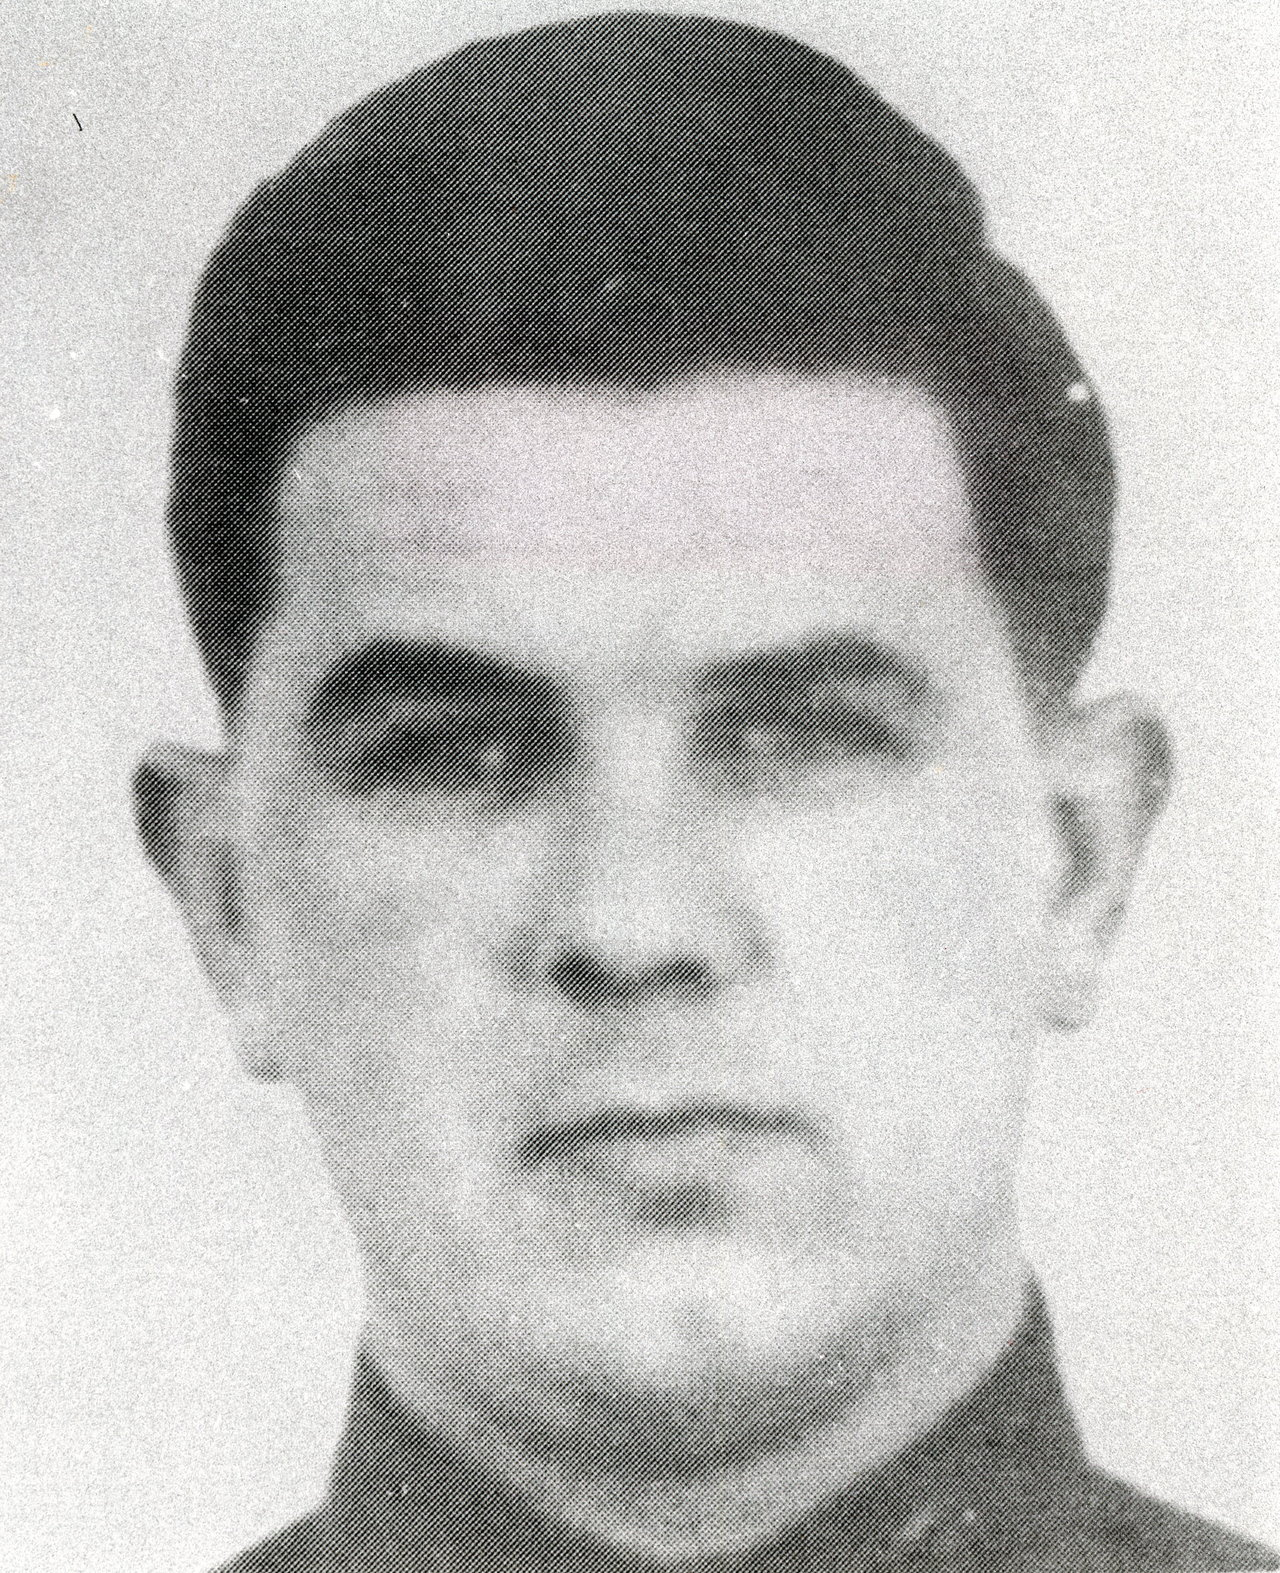 July 4, 1948 - Trooper Robert V. Conklin